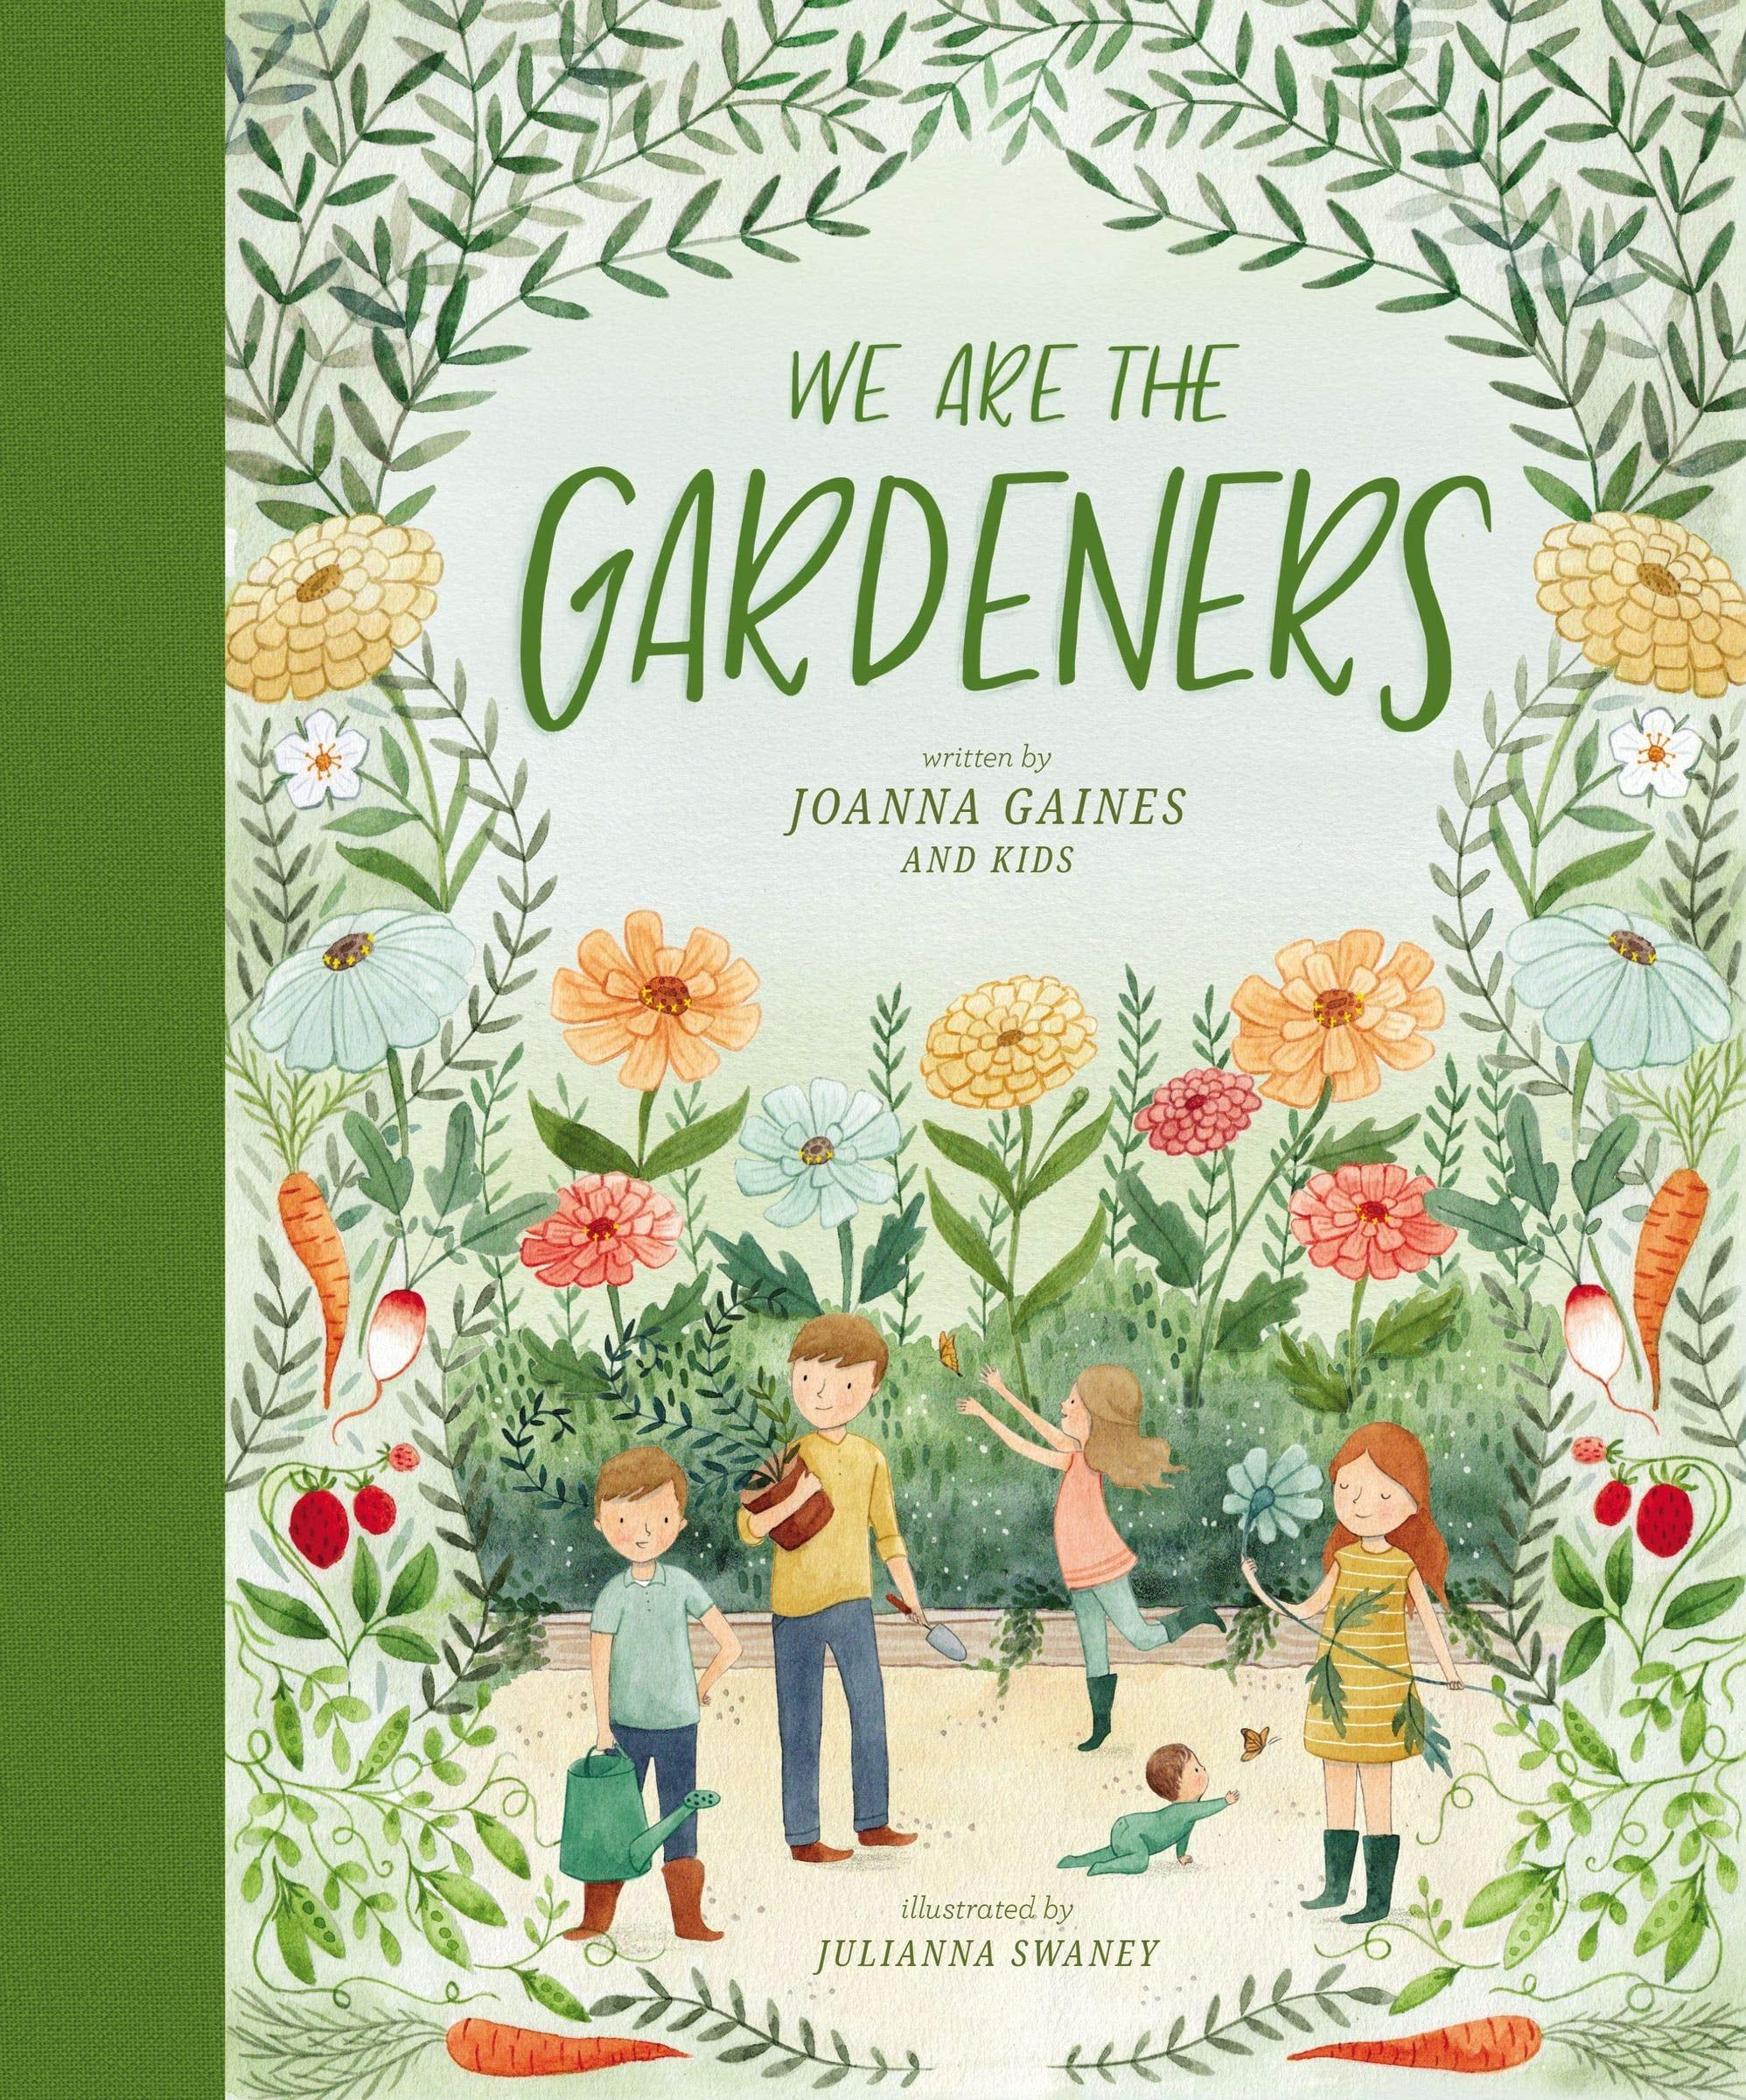 Joanna Gaines Children S Book We Are The Gardeners Is Out And